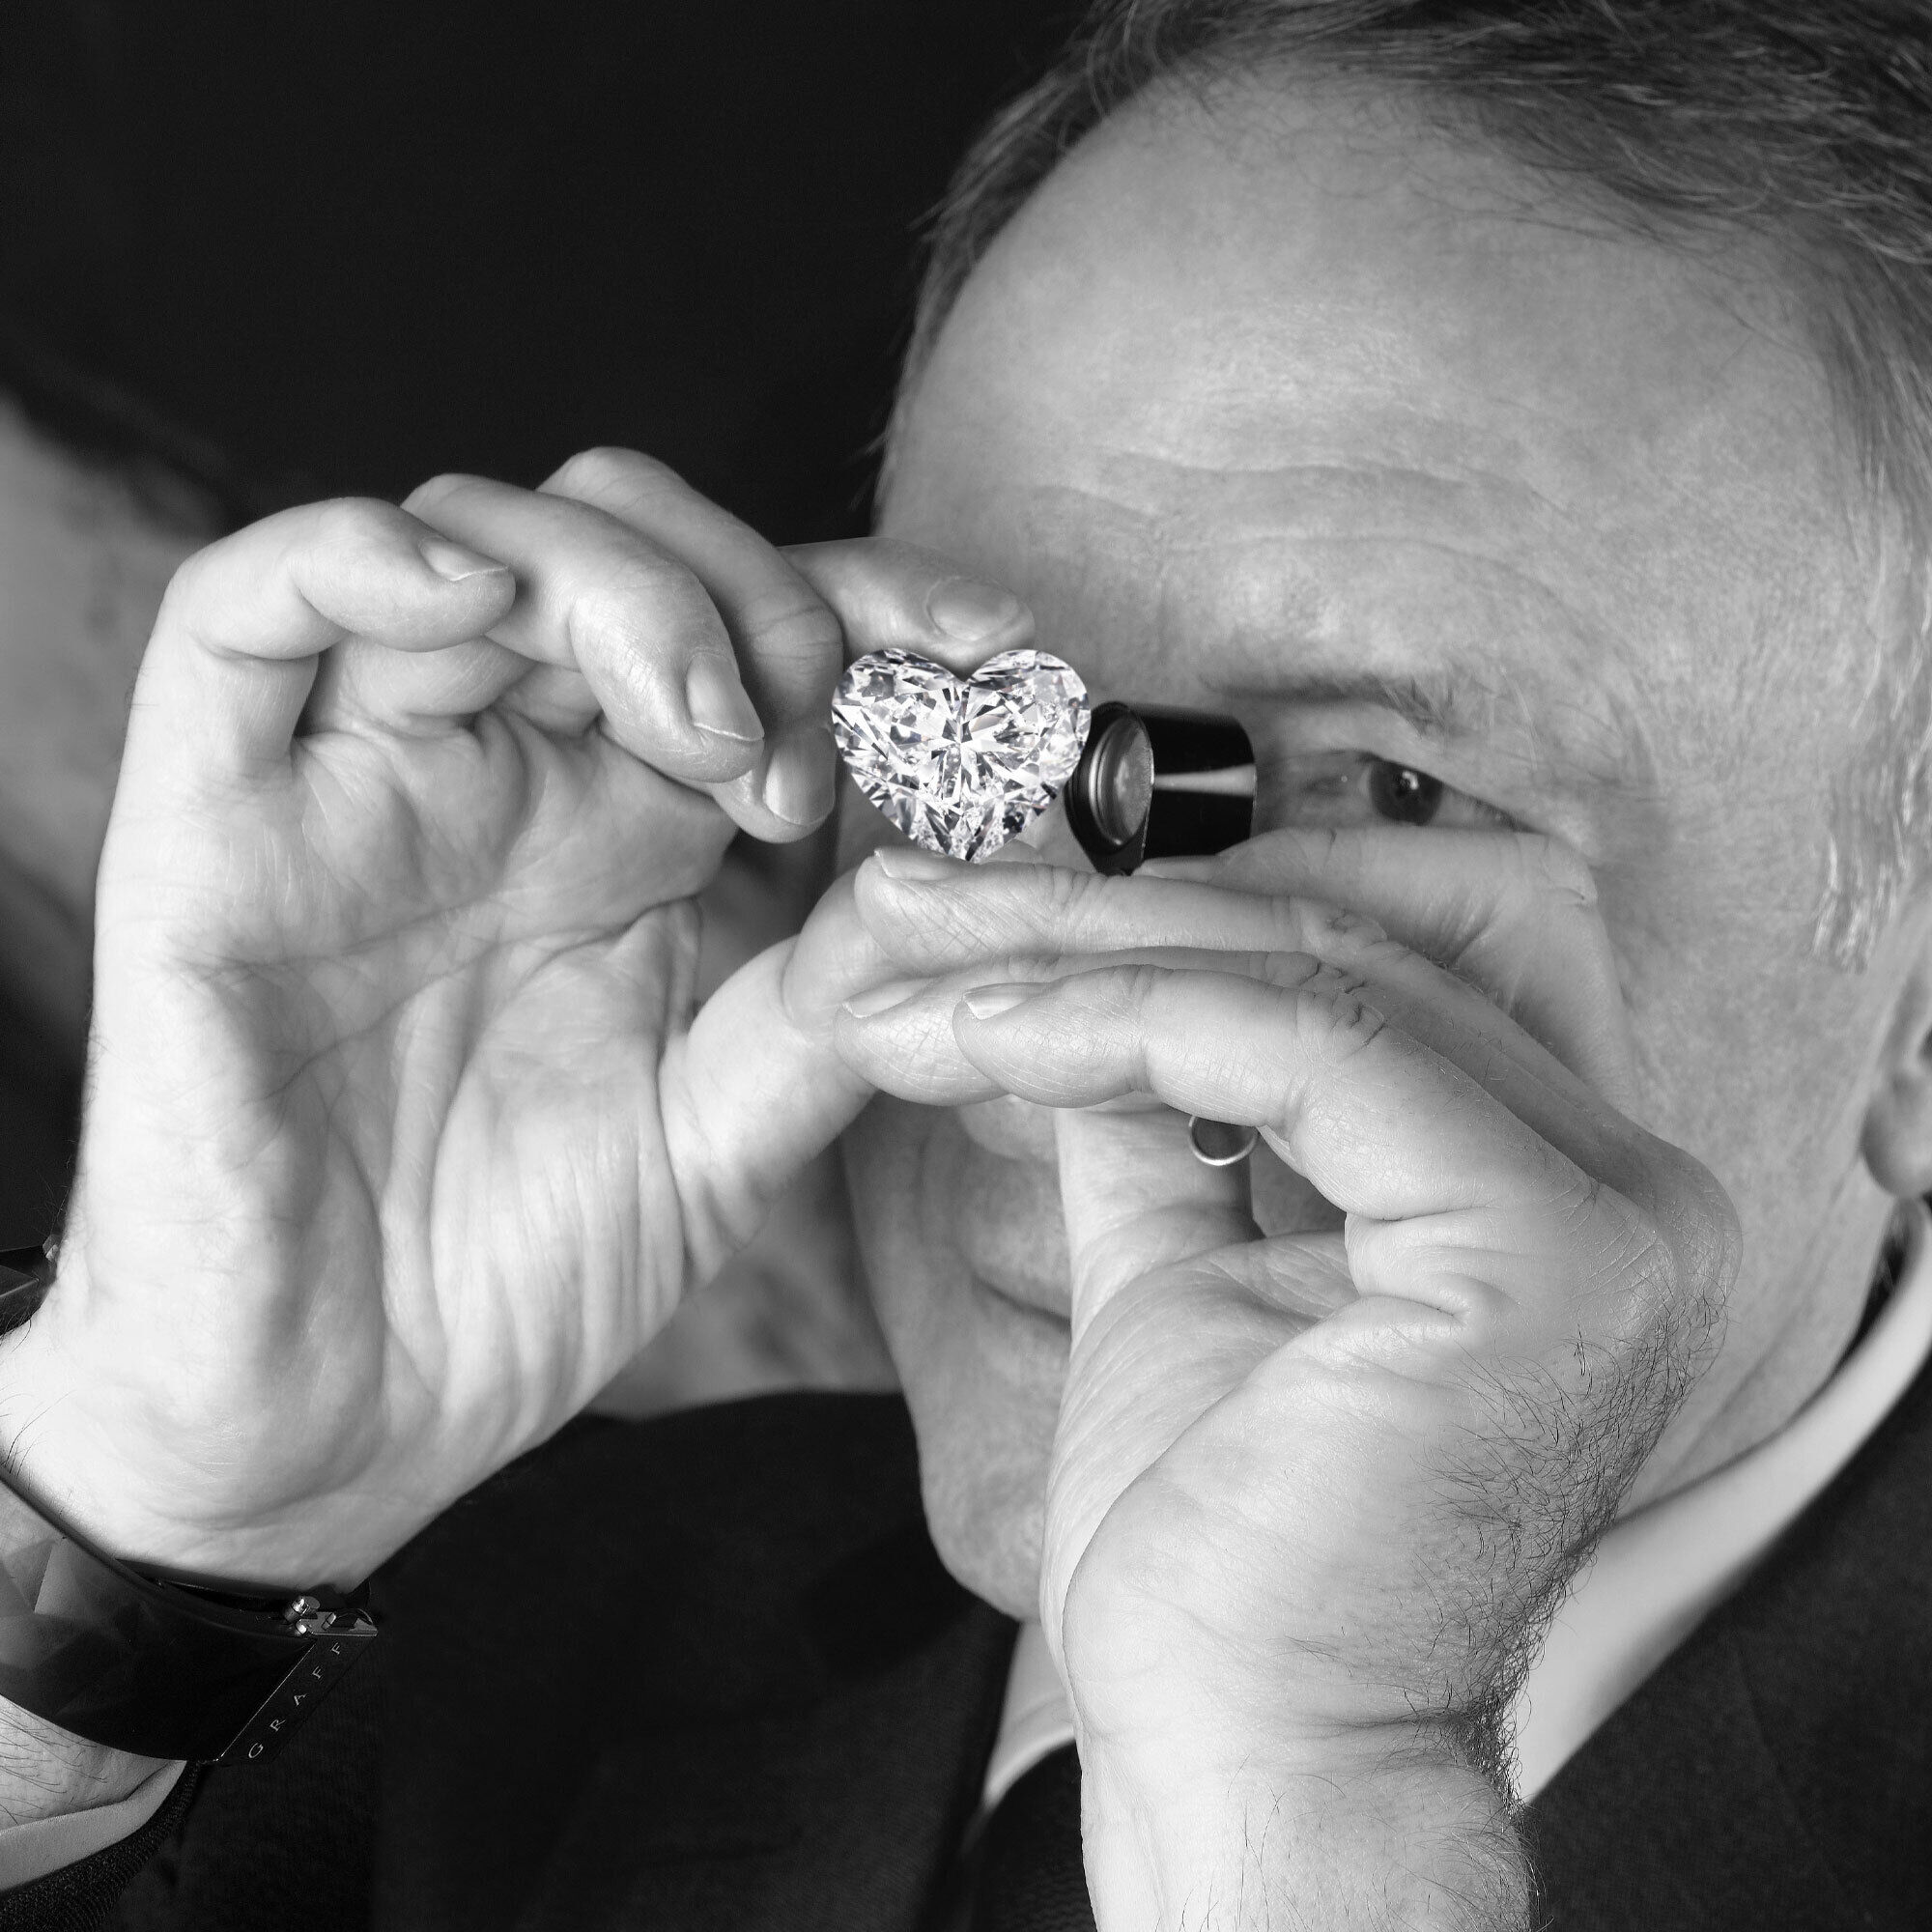 Mr Laurence Graff looking into a heart shape diamond through a loupe